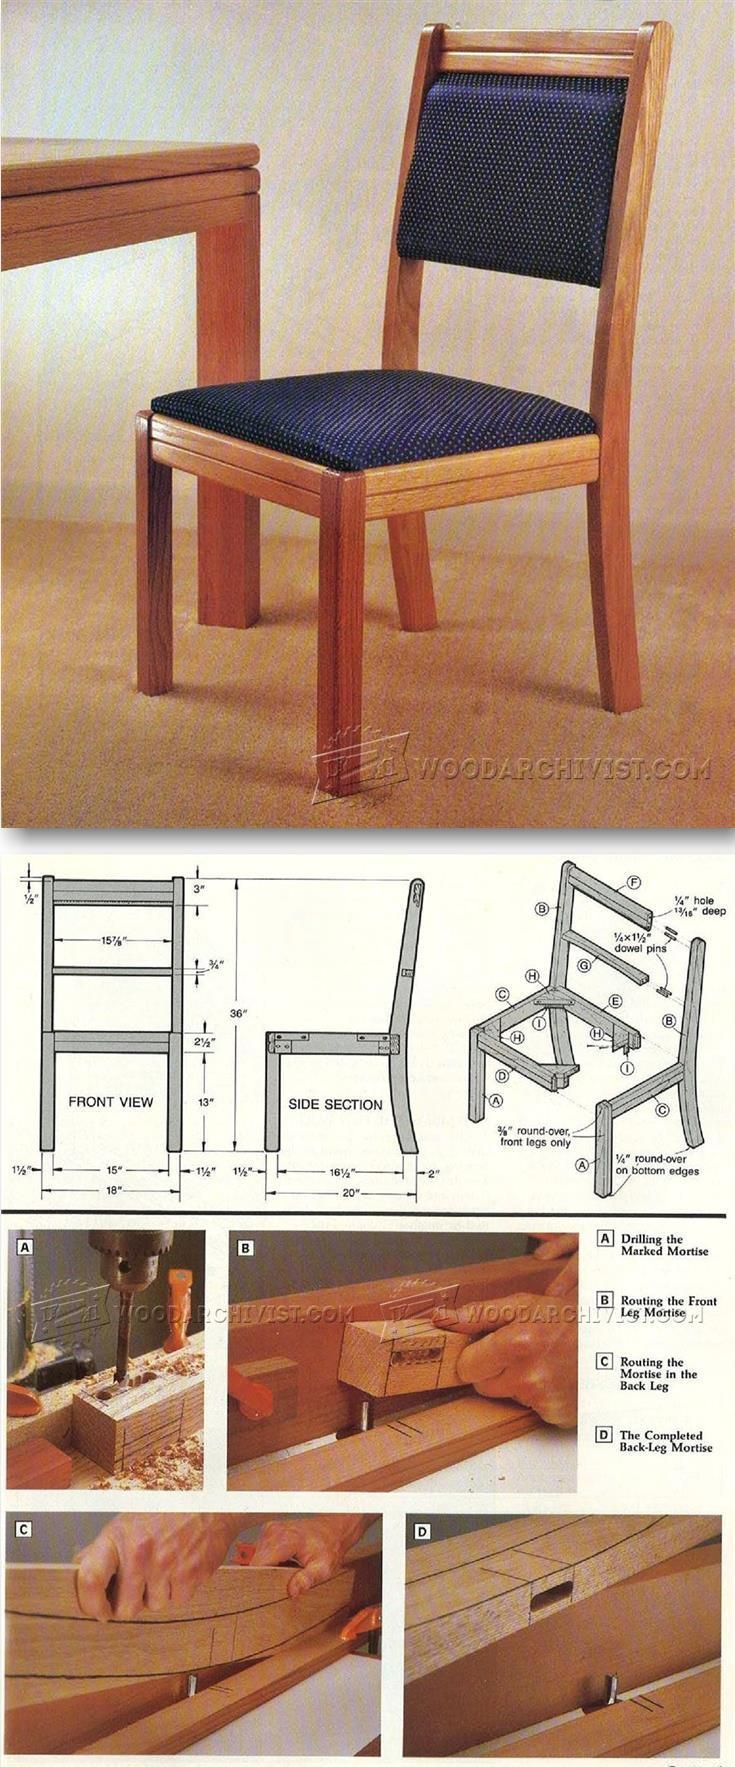 Solid Oak Dining Chair Plans Furniture Plans And Projects Http  # Muebles Sencillos De Madera